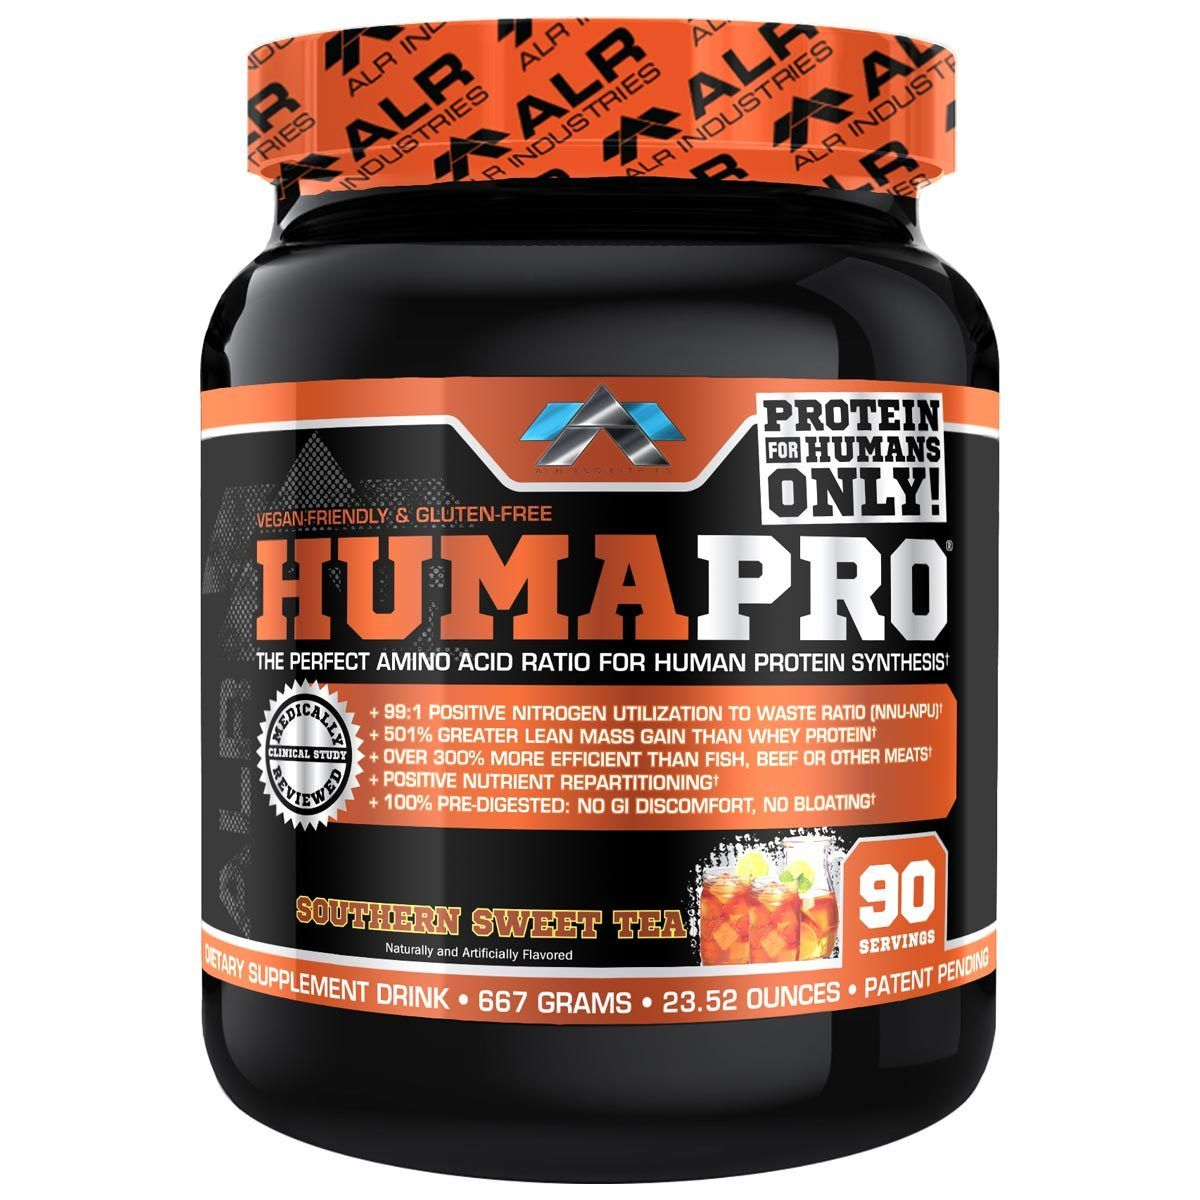 ALRI (ALR Industries) Humapro 90 Servings Amino Acids ALRI (ALR Industries) Sweet Tea  (1059273605163)